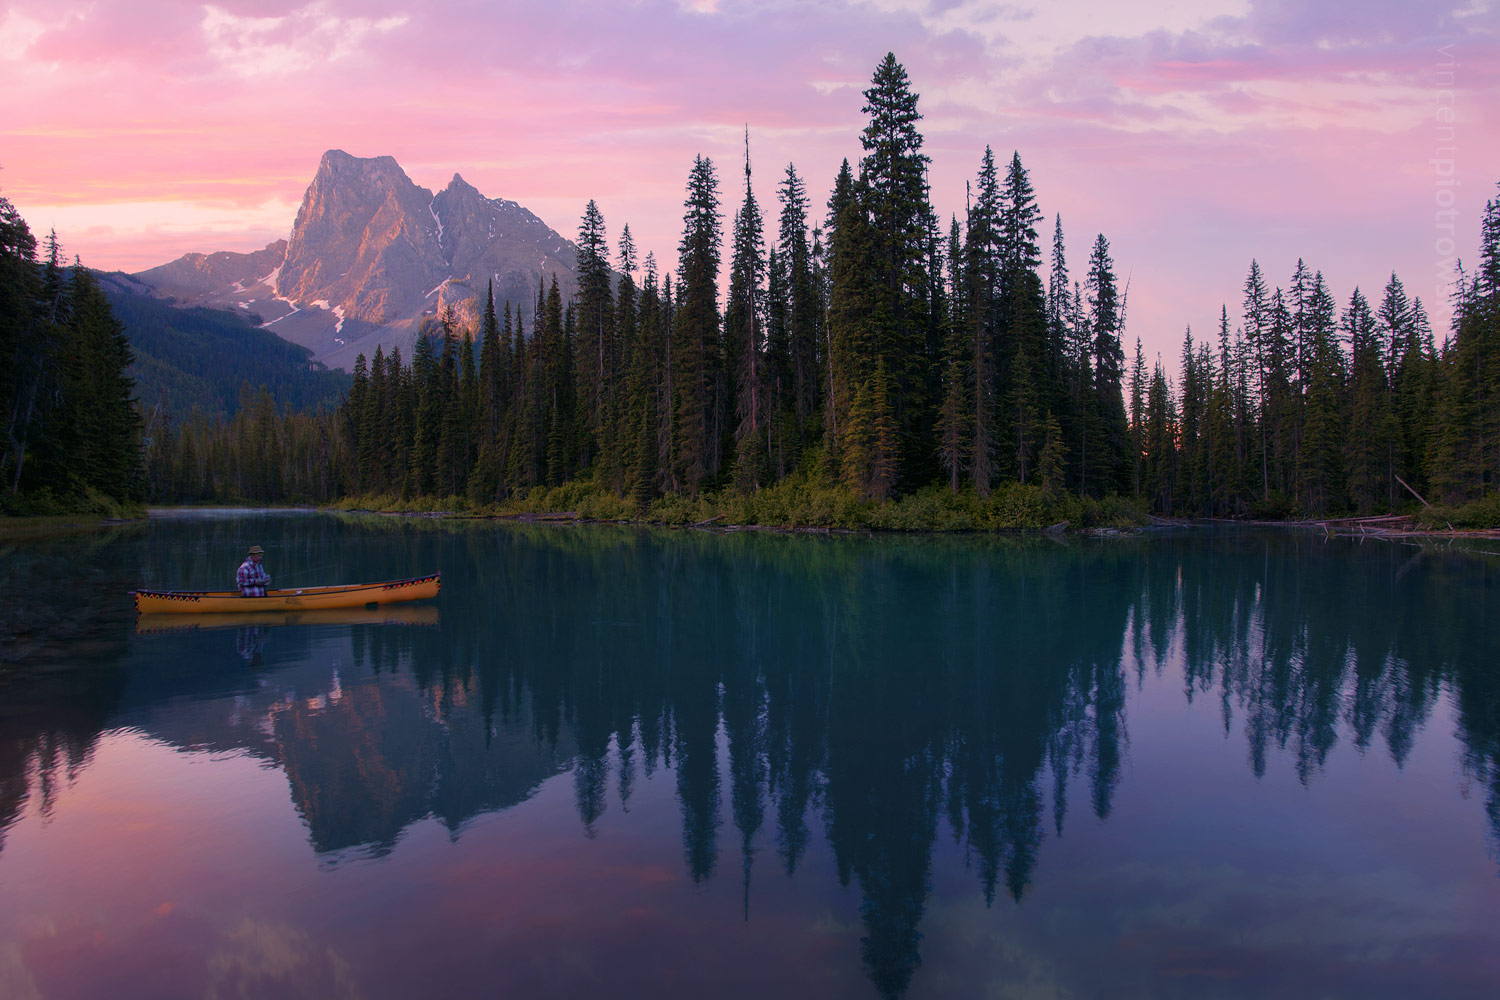 A sportsman fishing out of a canoe on Emerald Lake at sunrise with mountains in the background.